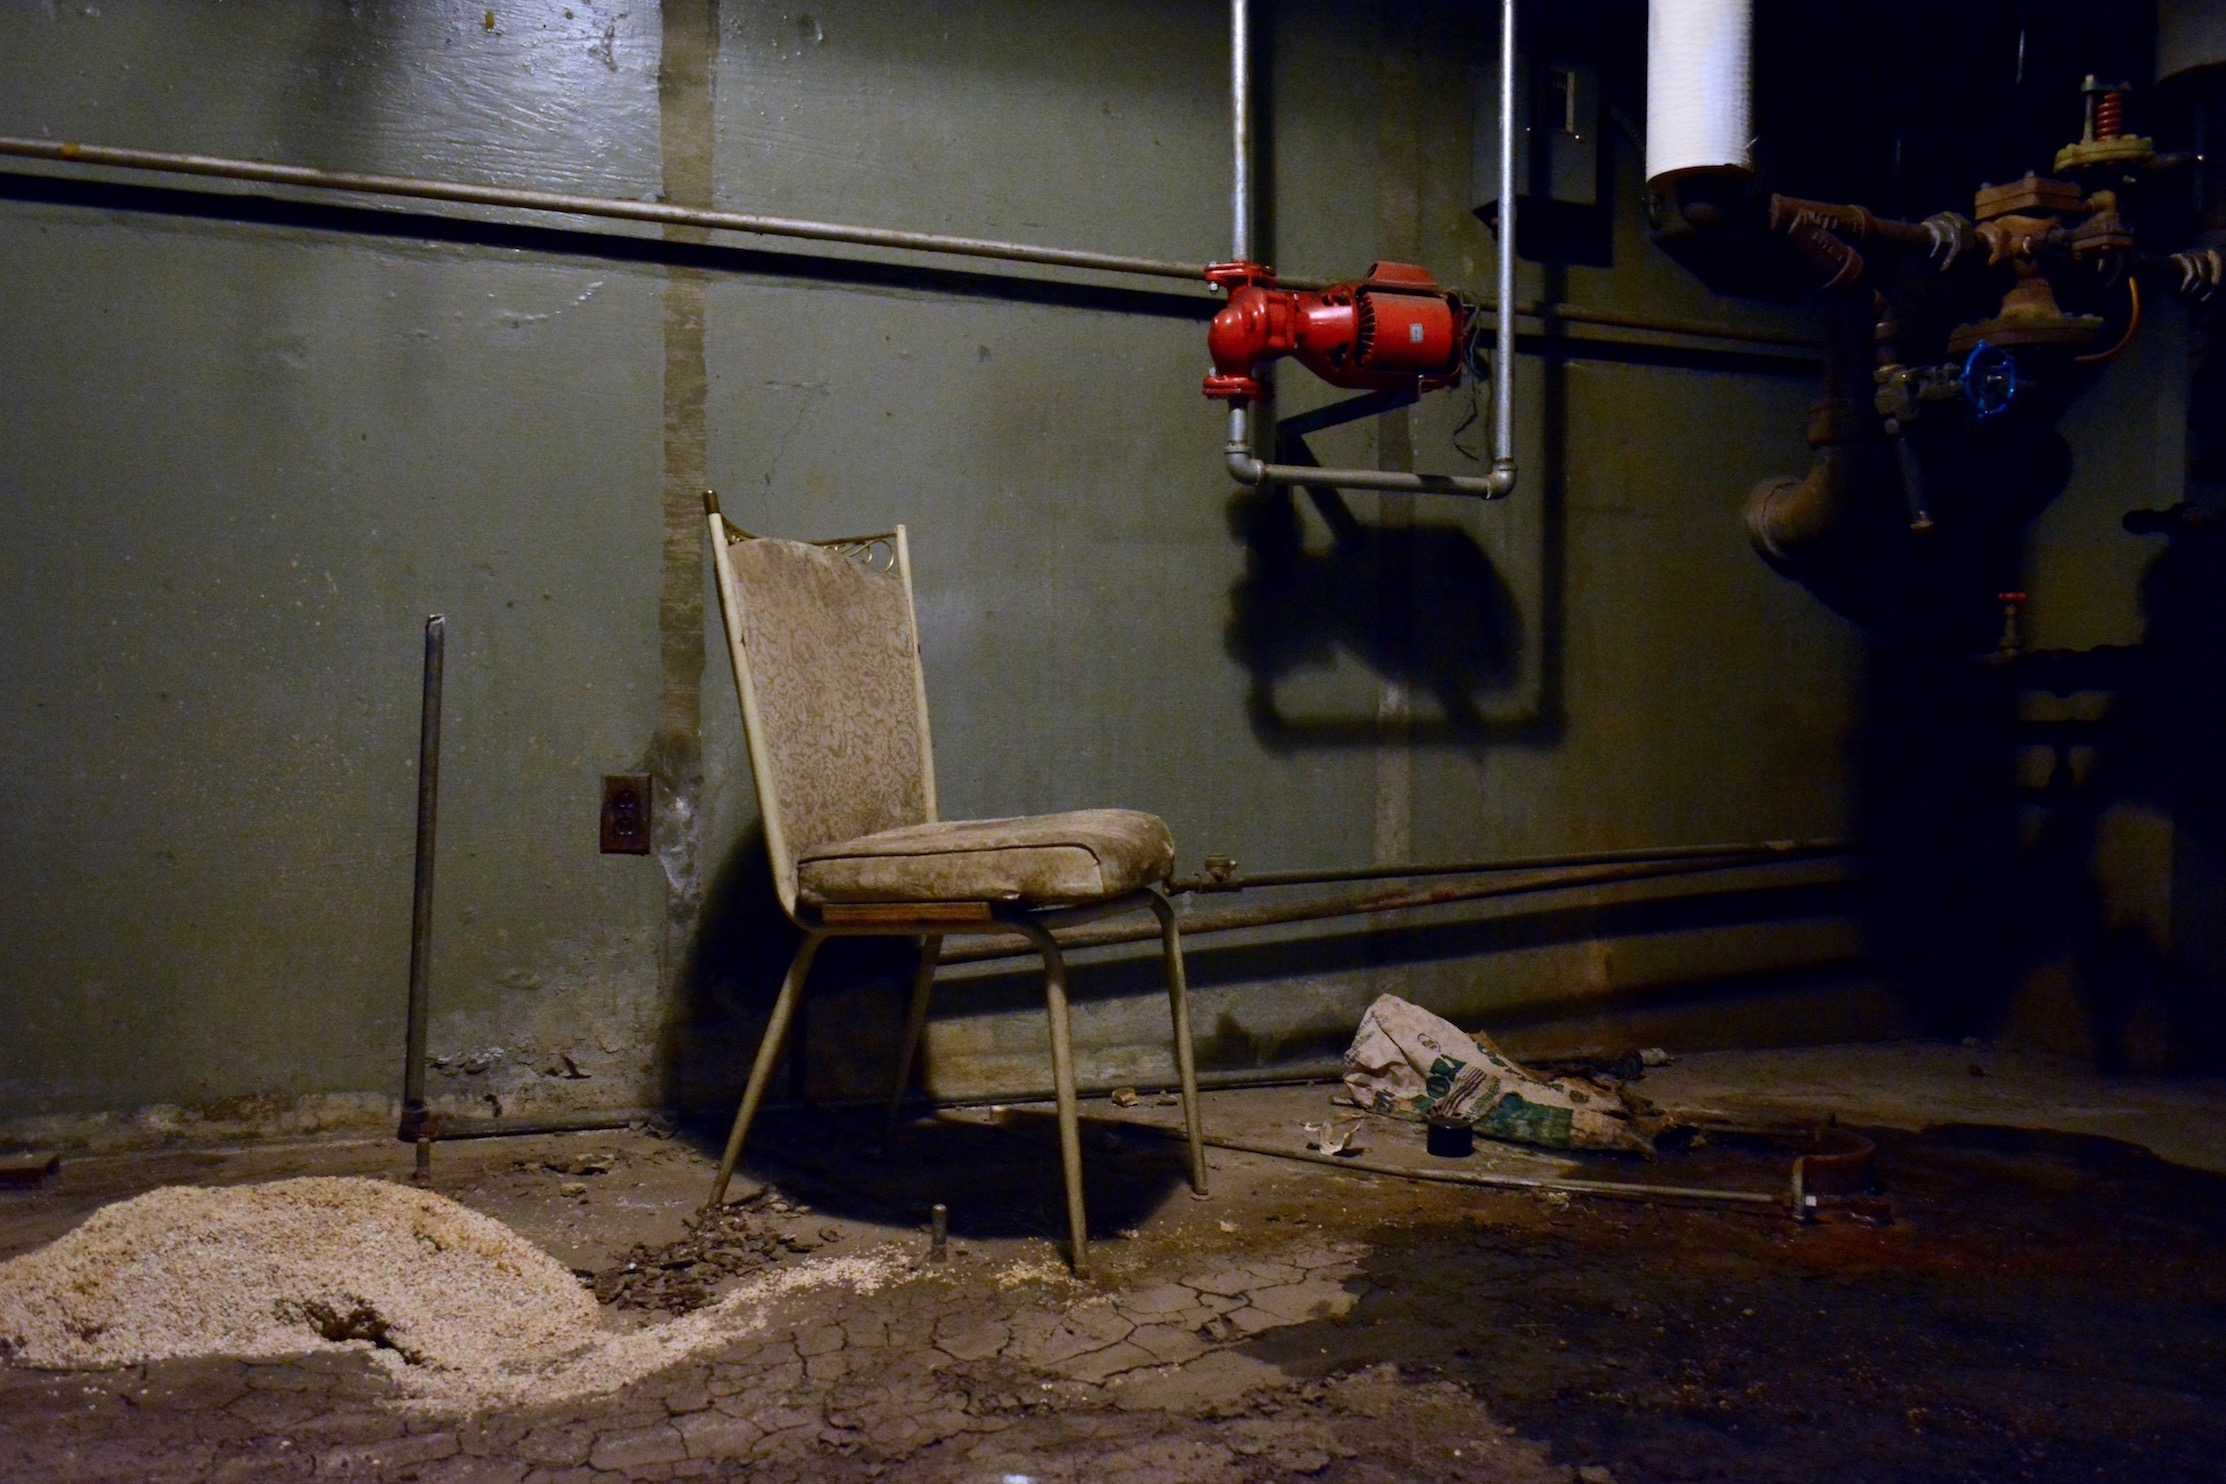 Long+forgotten+items+still+remain+in+the+heart+of+the+boiler+operations+room+at+%22Old+Heat%22